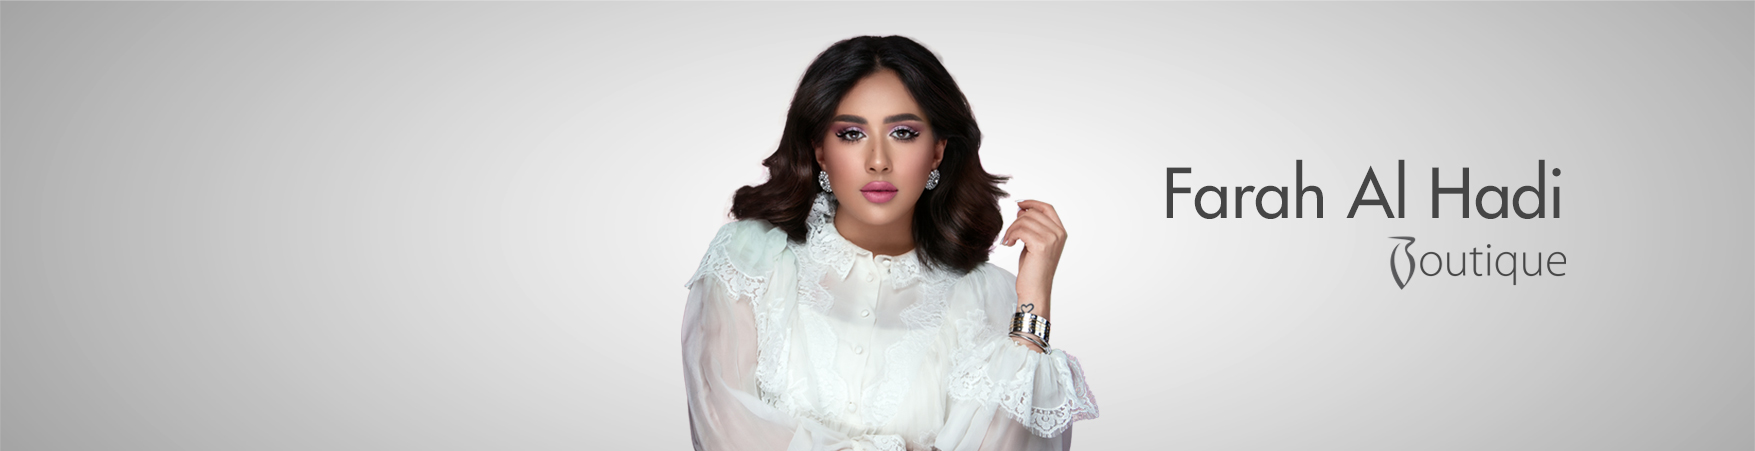 Farah Al Hadi Boutique